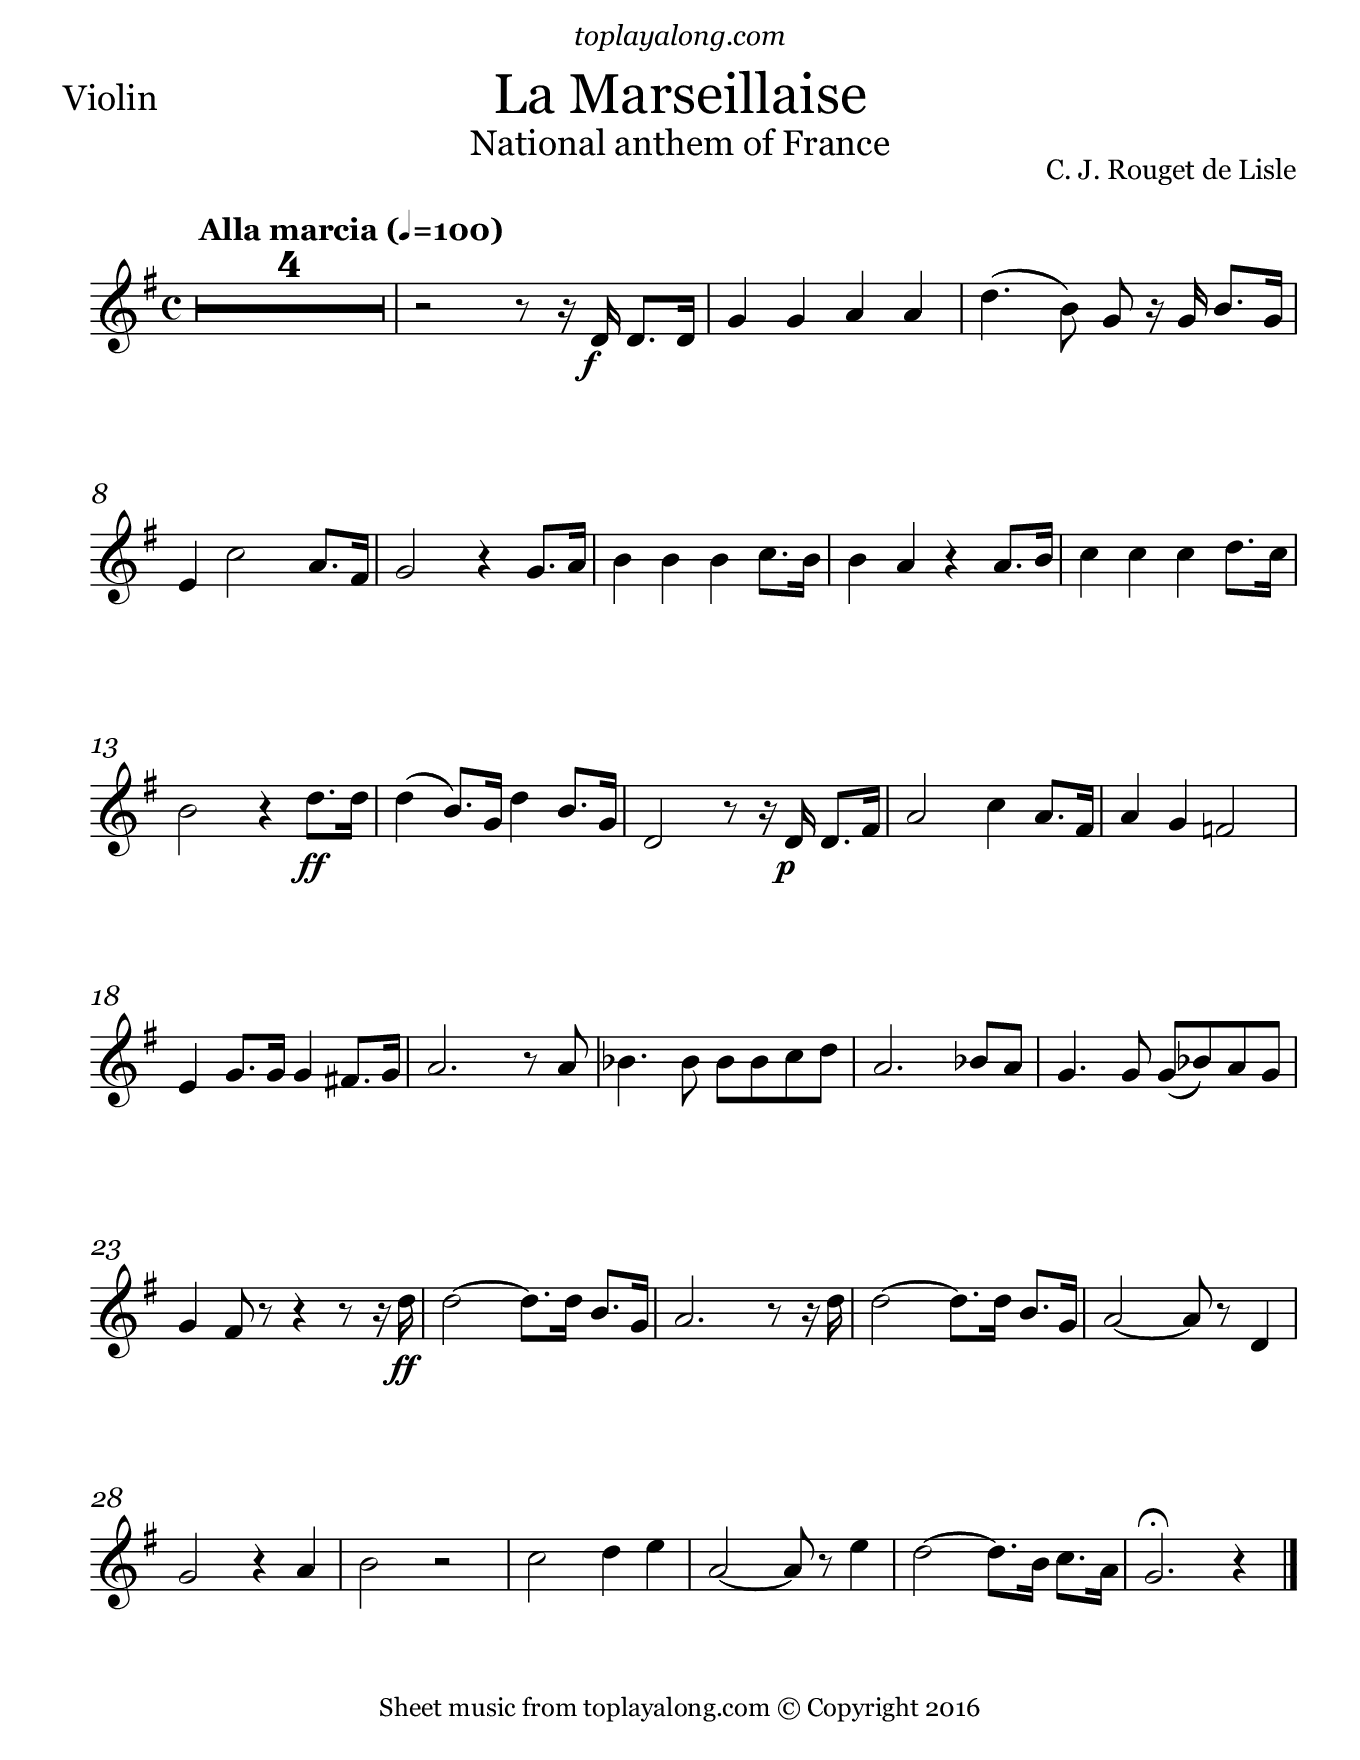 National Anthem of France (La Marseillaise). Sheet music for Violin, page 1.